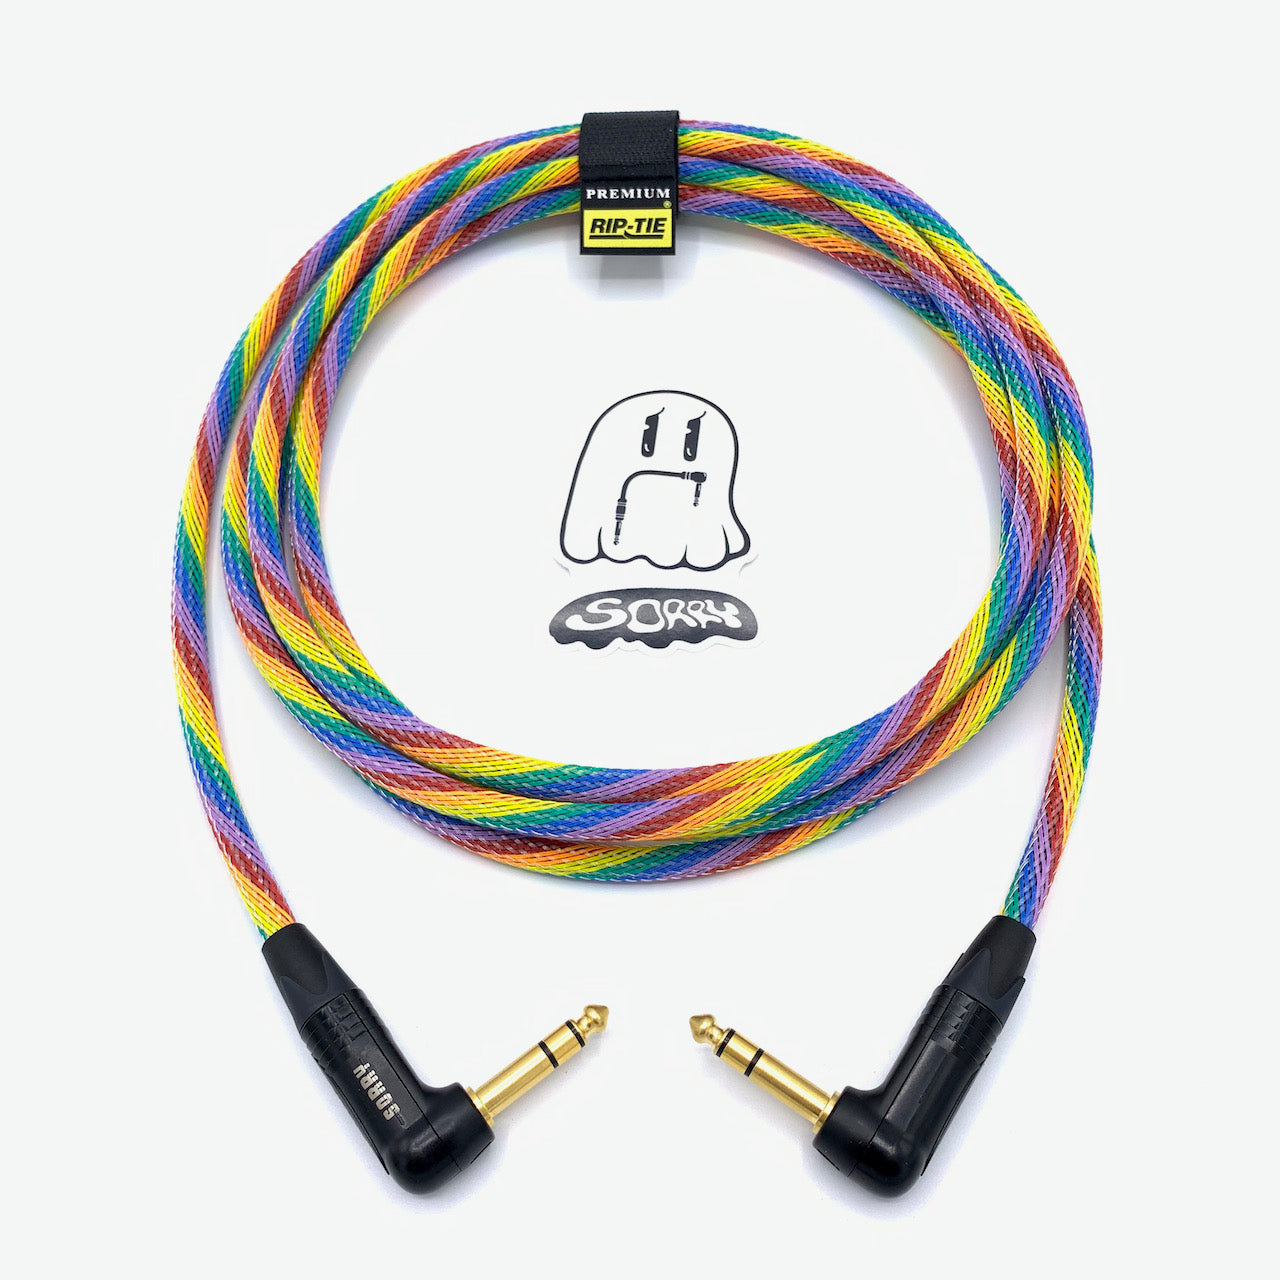 "SORRY 1/4"" Right TRS to 1/4"" Right TRS Balanced Cable - Rainbow"